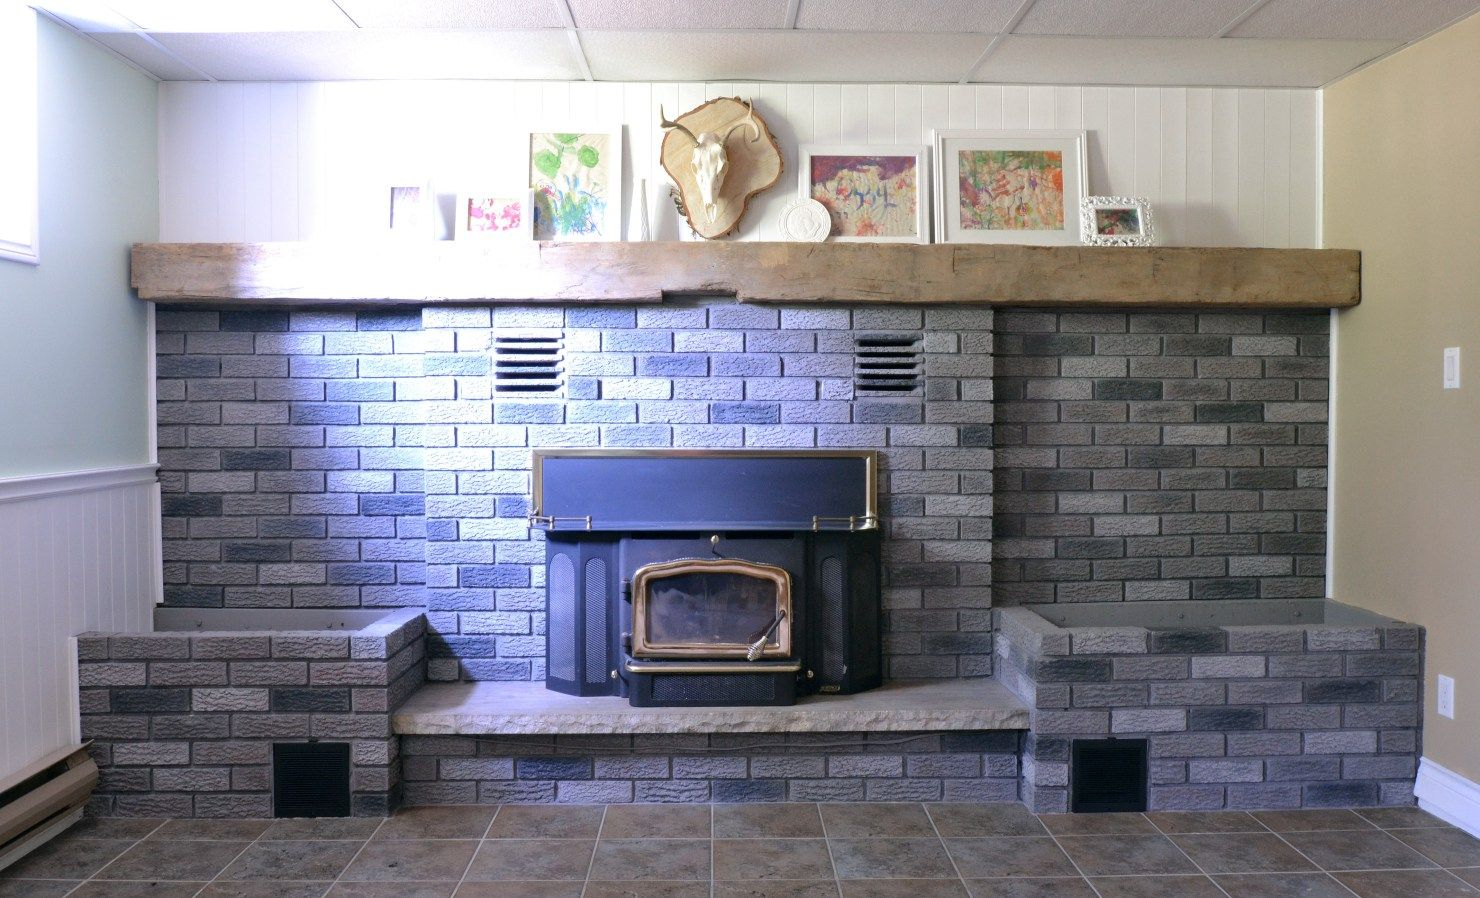 Grey Paint Wash On A Brick Fireplace: Before & After | Brick ...